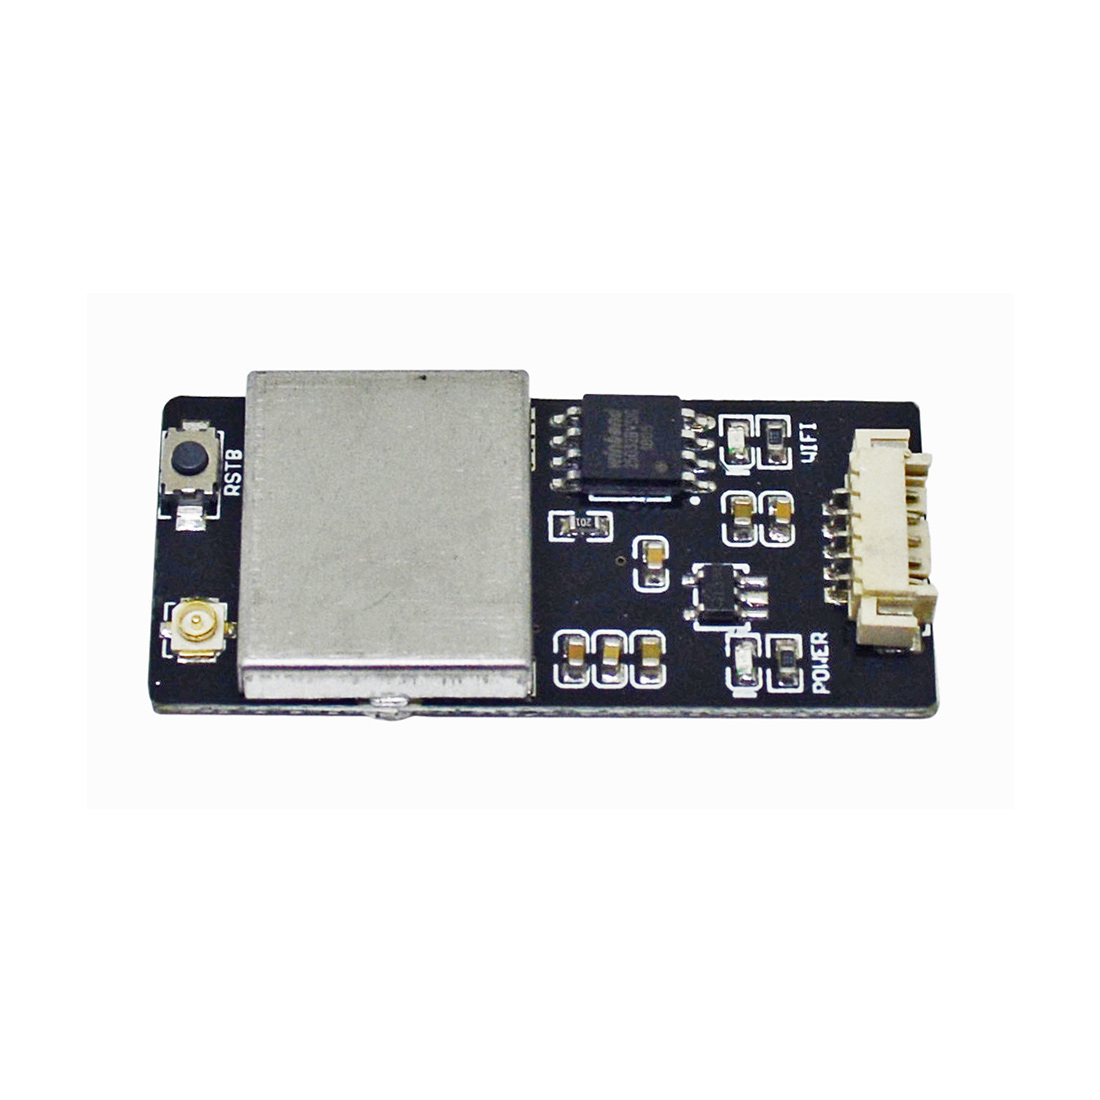 flight controller not connecting to pc